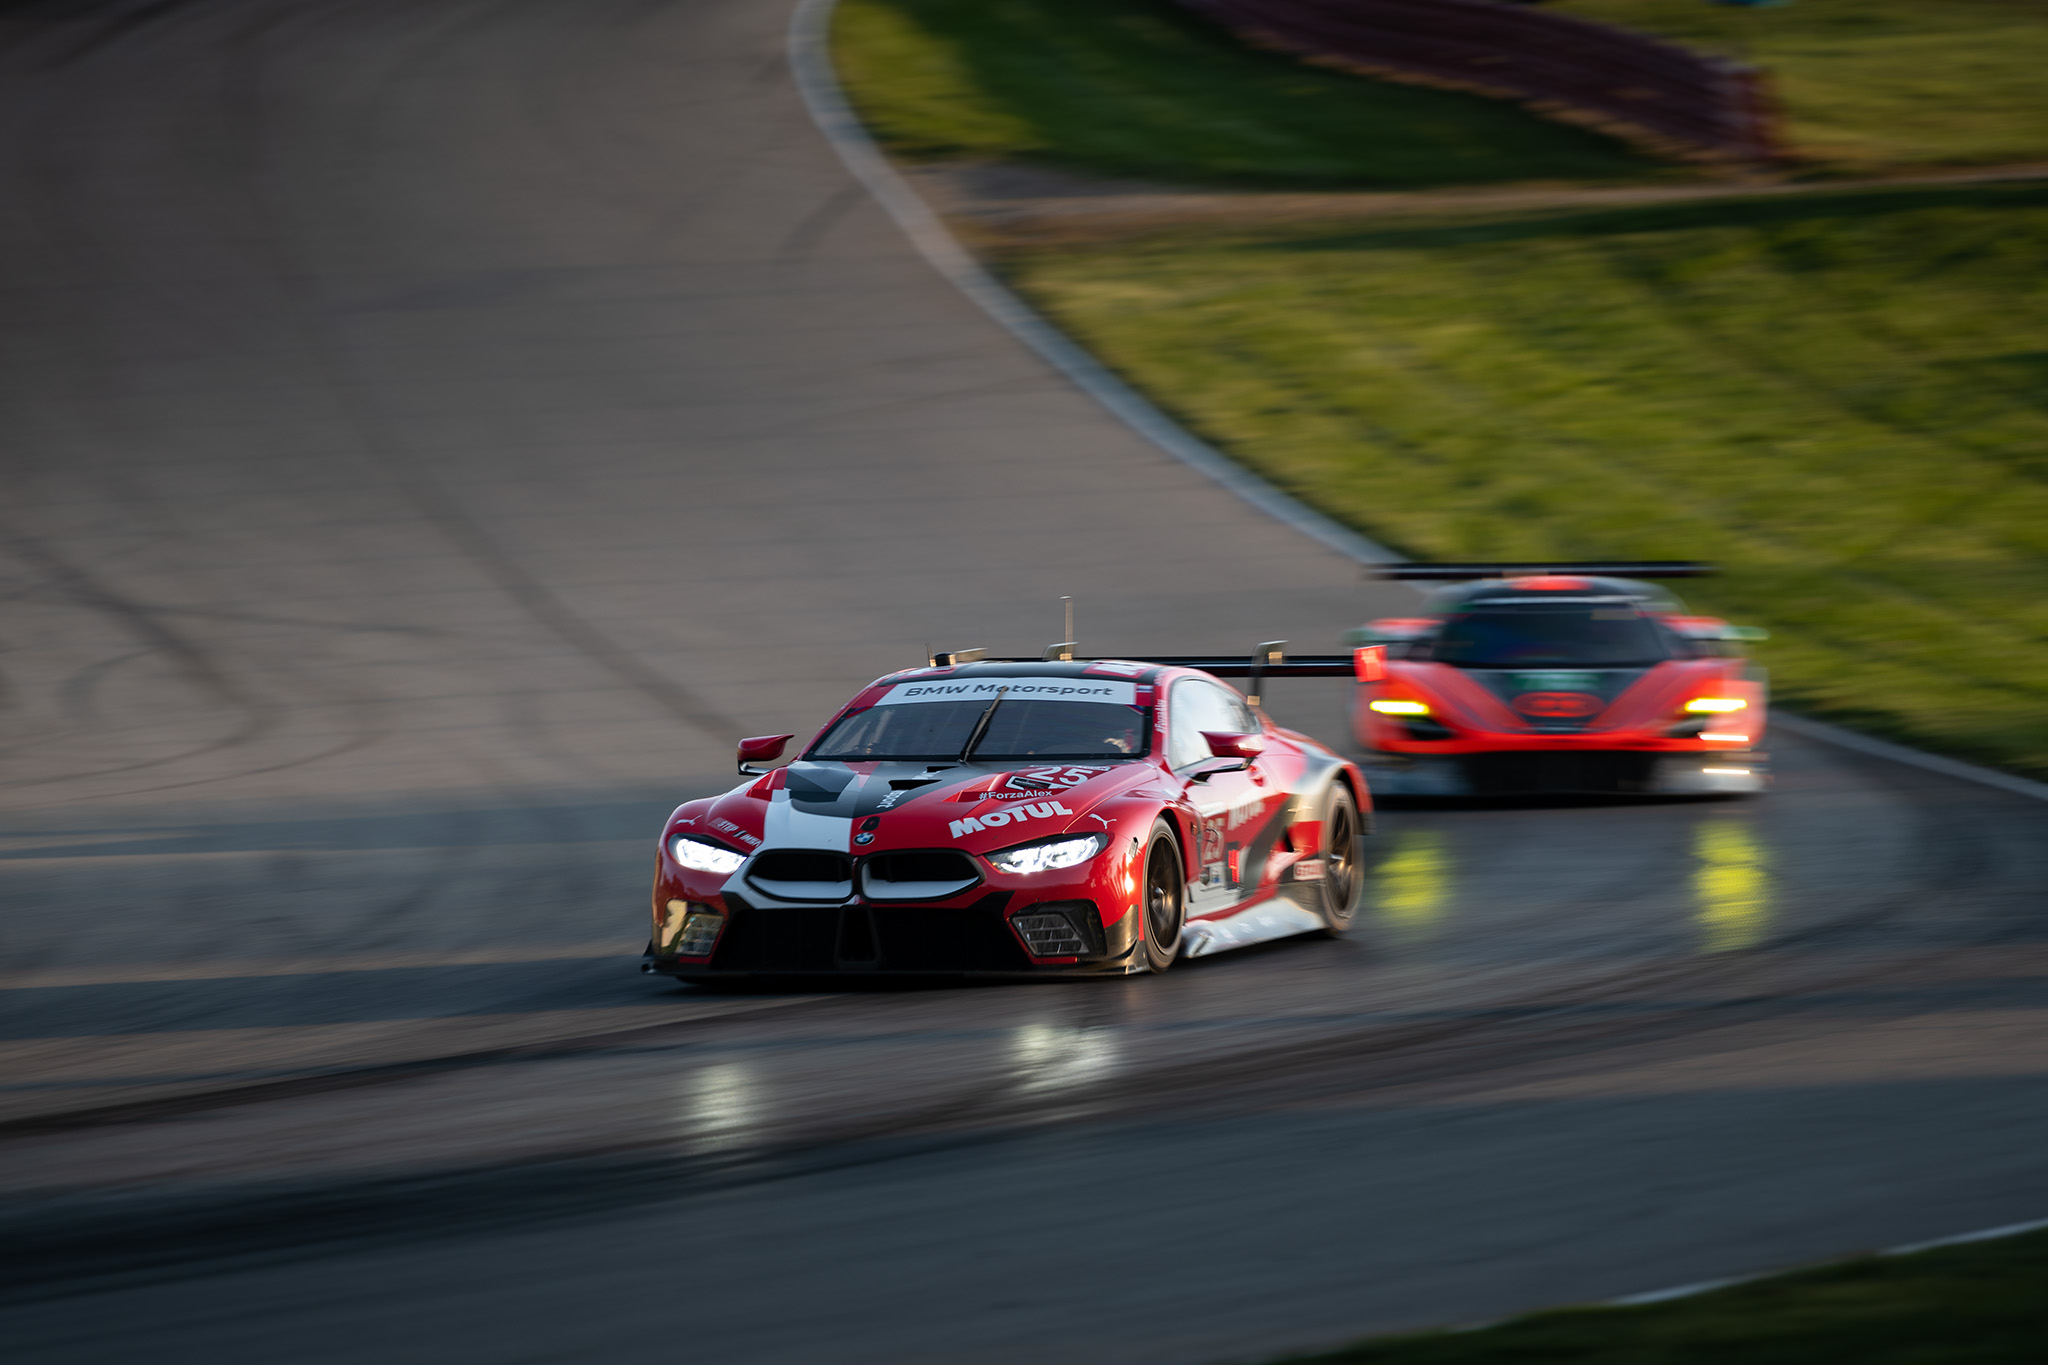 Connor De Phillippi bringing the BMW Team RLL M8 GTE through Madness at IMSA Mid Ohio 2020 motorsports photography by Luke Munnell